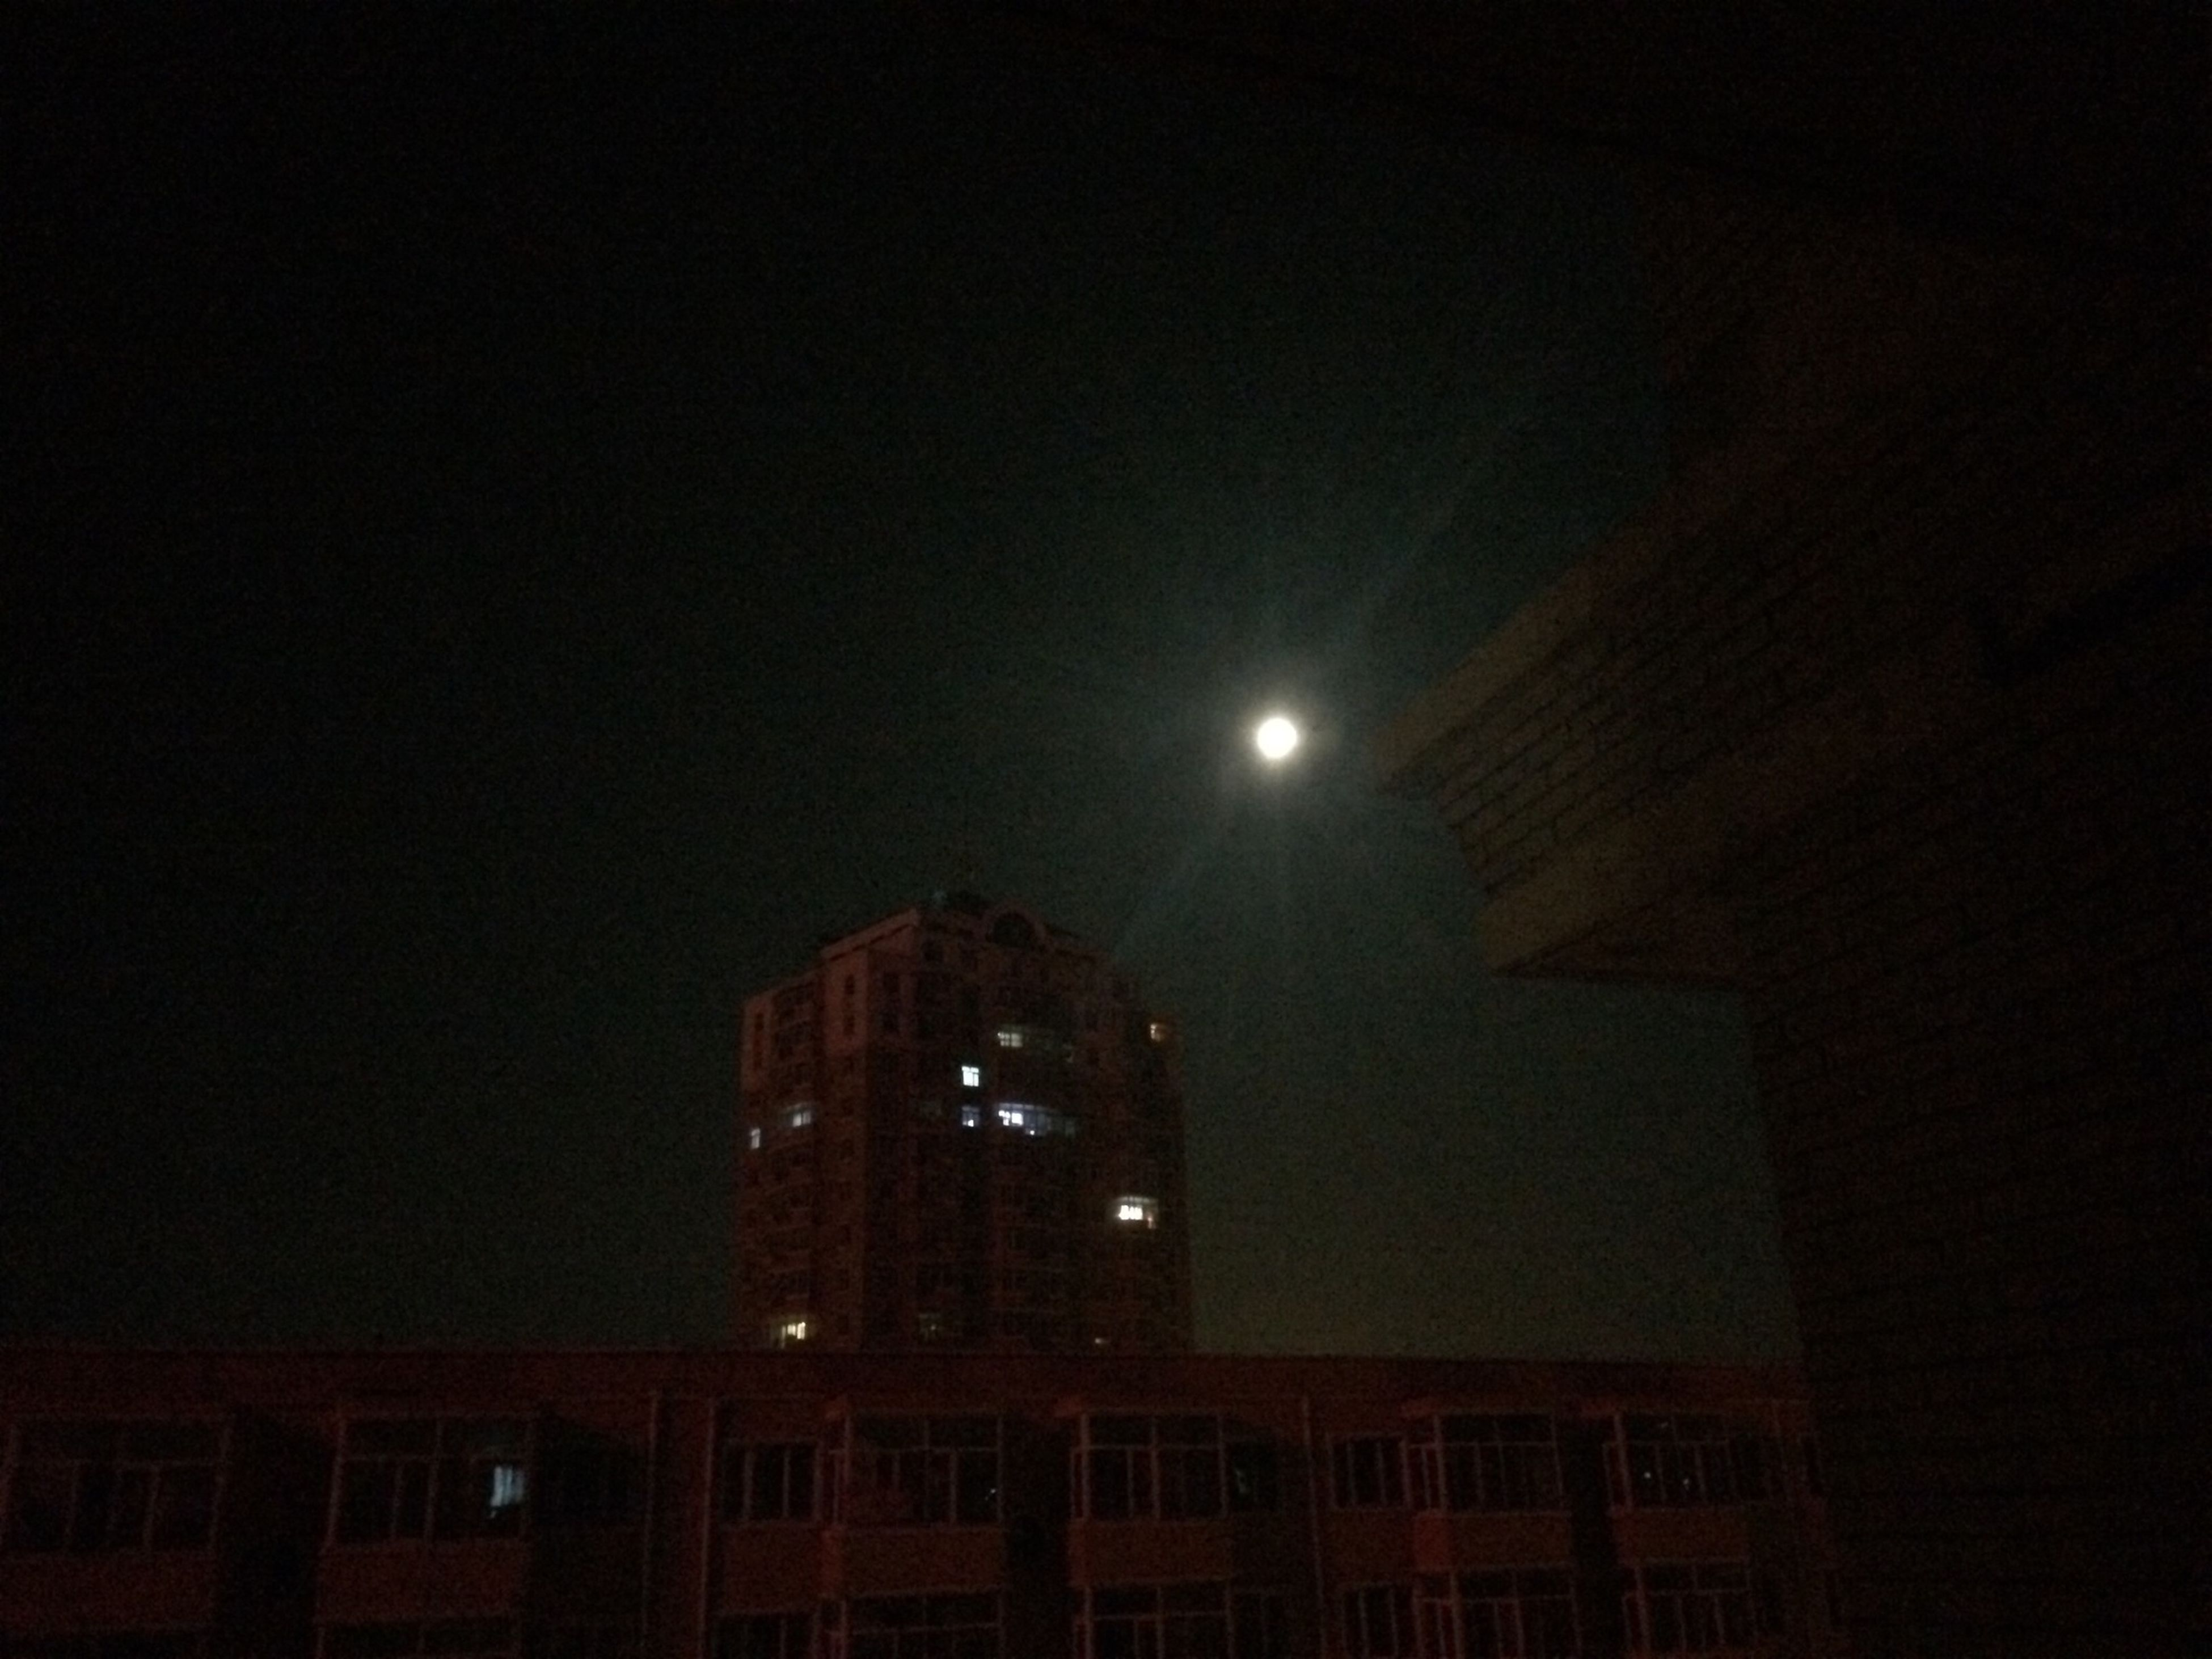 night, architecture, illuminated, building exterior, built structure, city, low angle view, sky, building, lighting equipment, moon, copy space, clear sky, modern, street light, residential building, tall - high, skyscraper, tower, office building